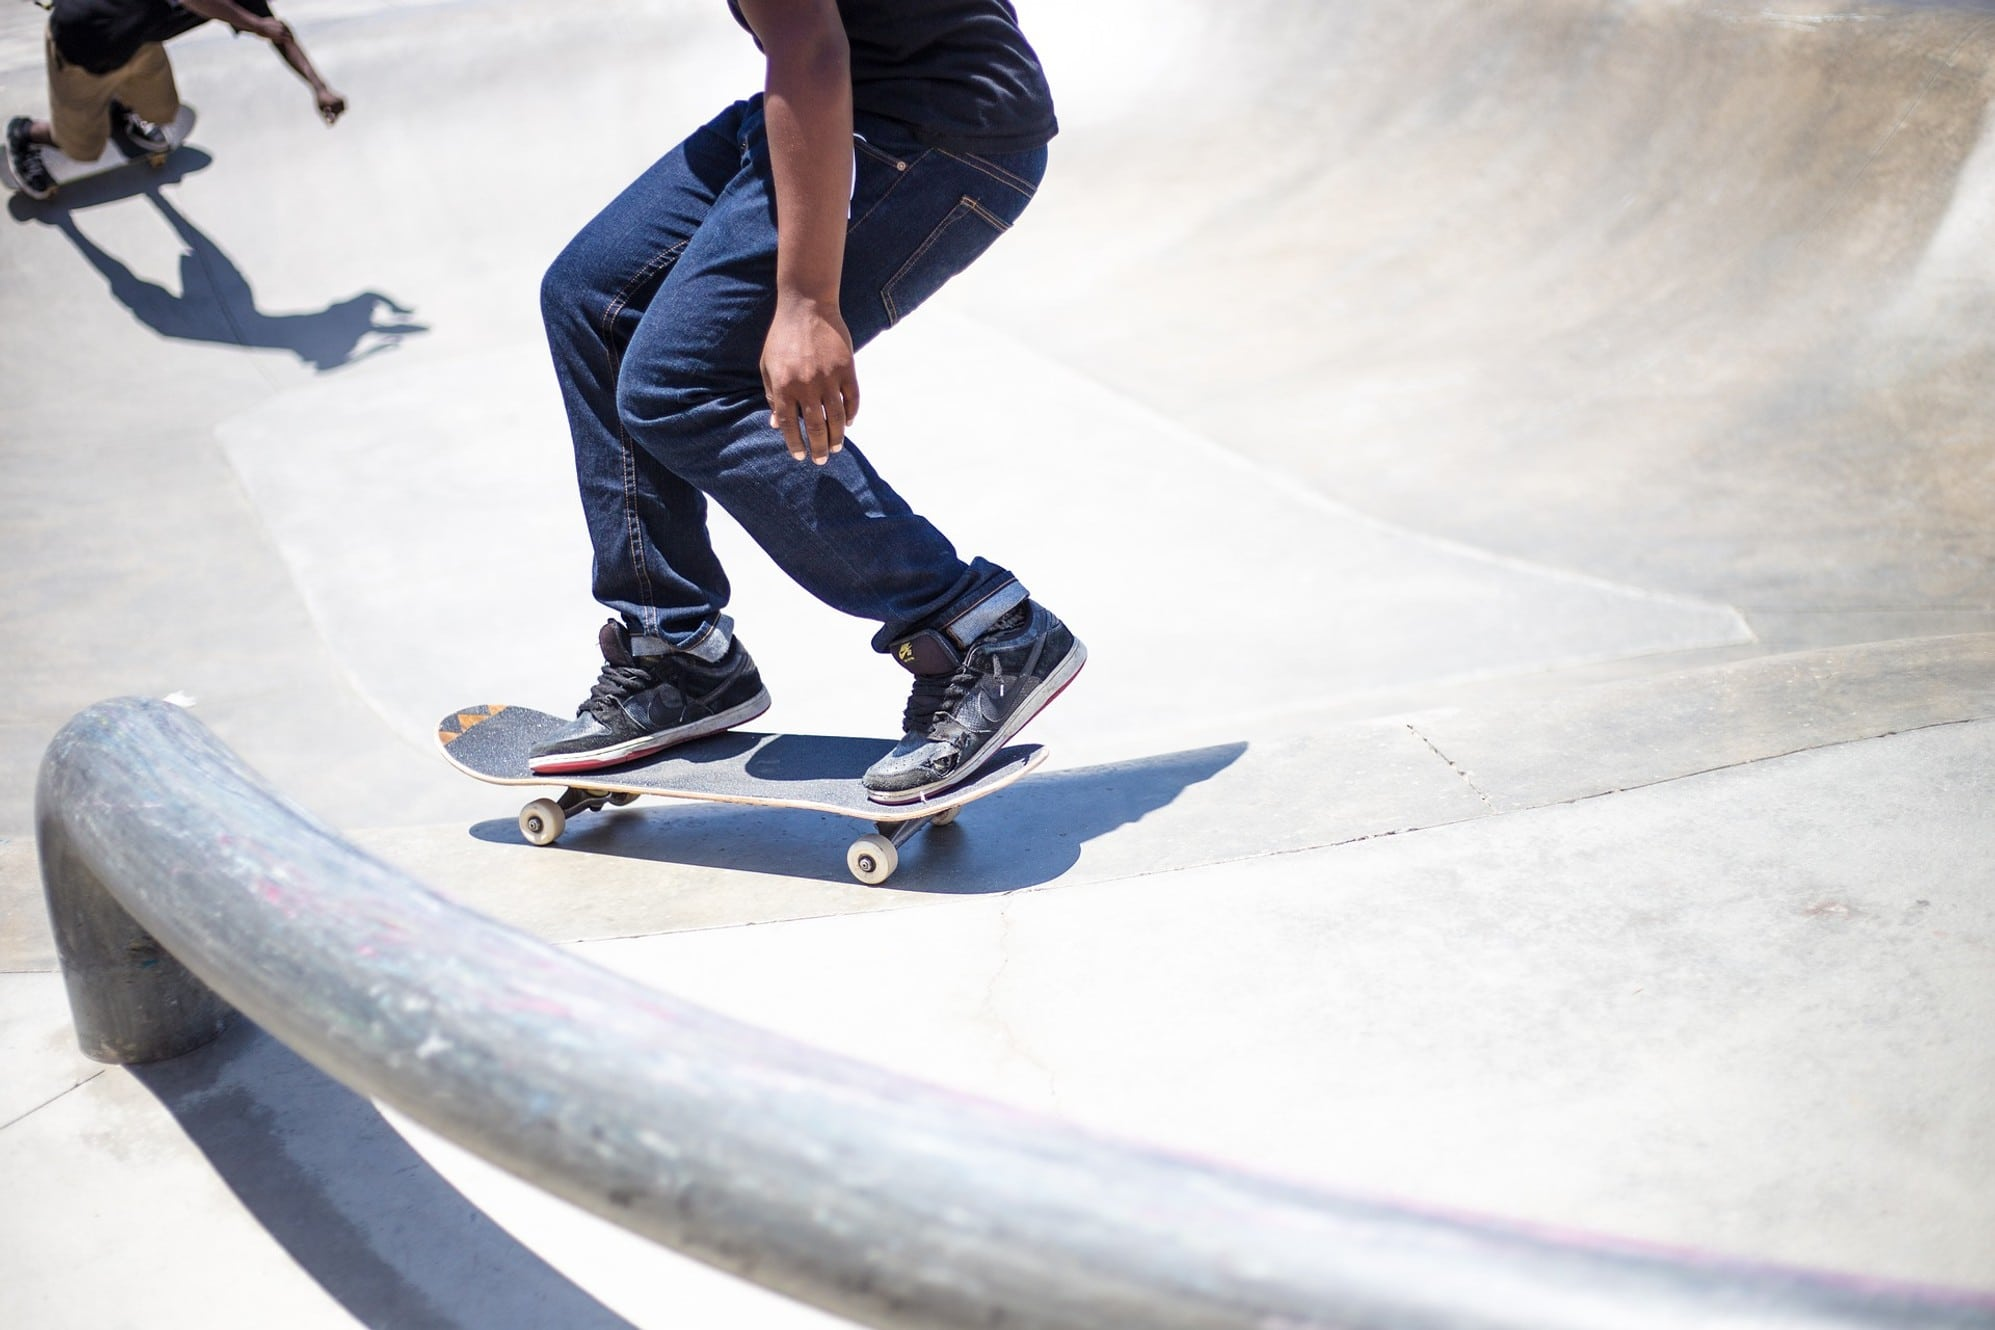 skateboarding how it can teach